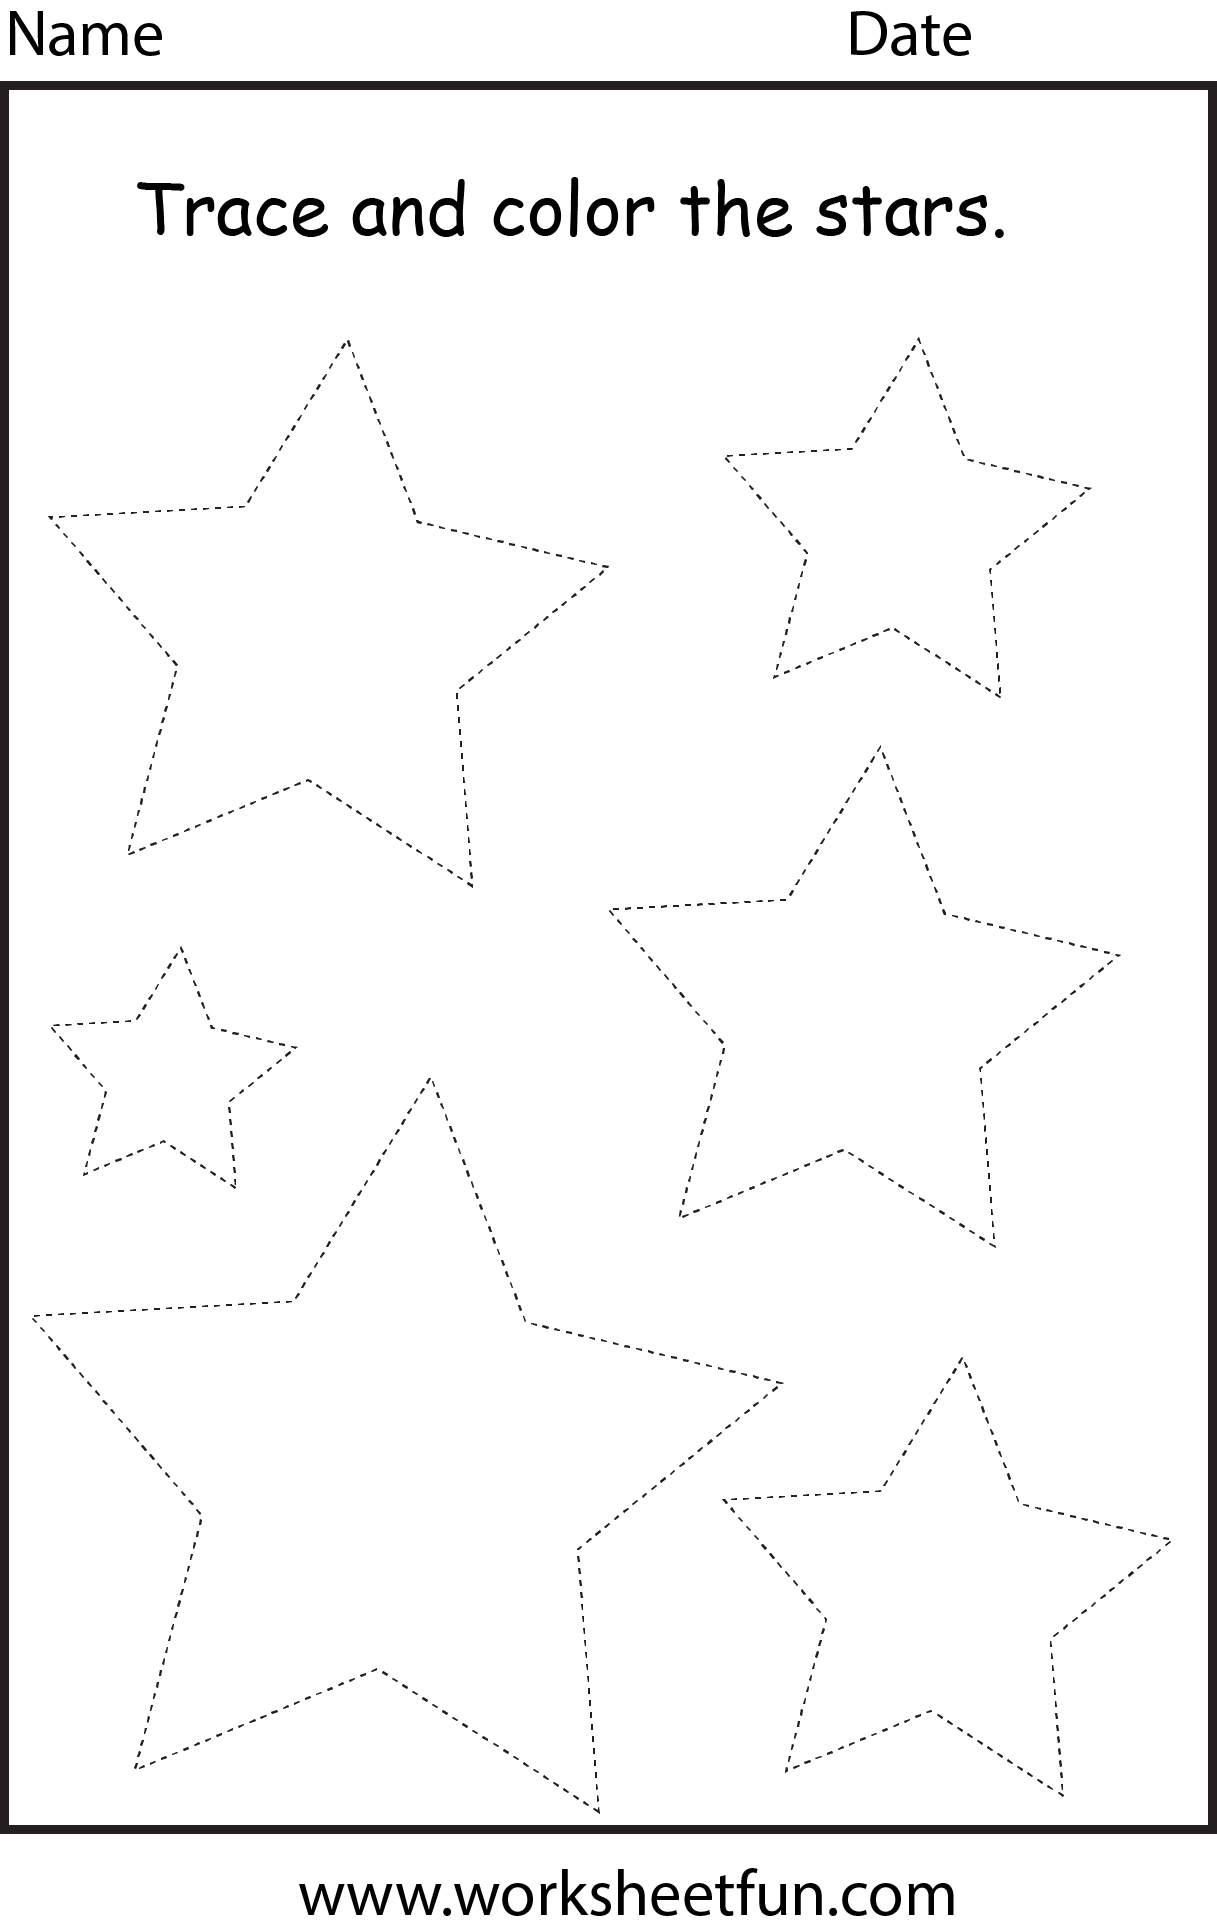 Shape Star 1 Worksheet Free Printable Worksheets